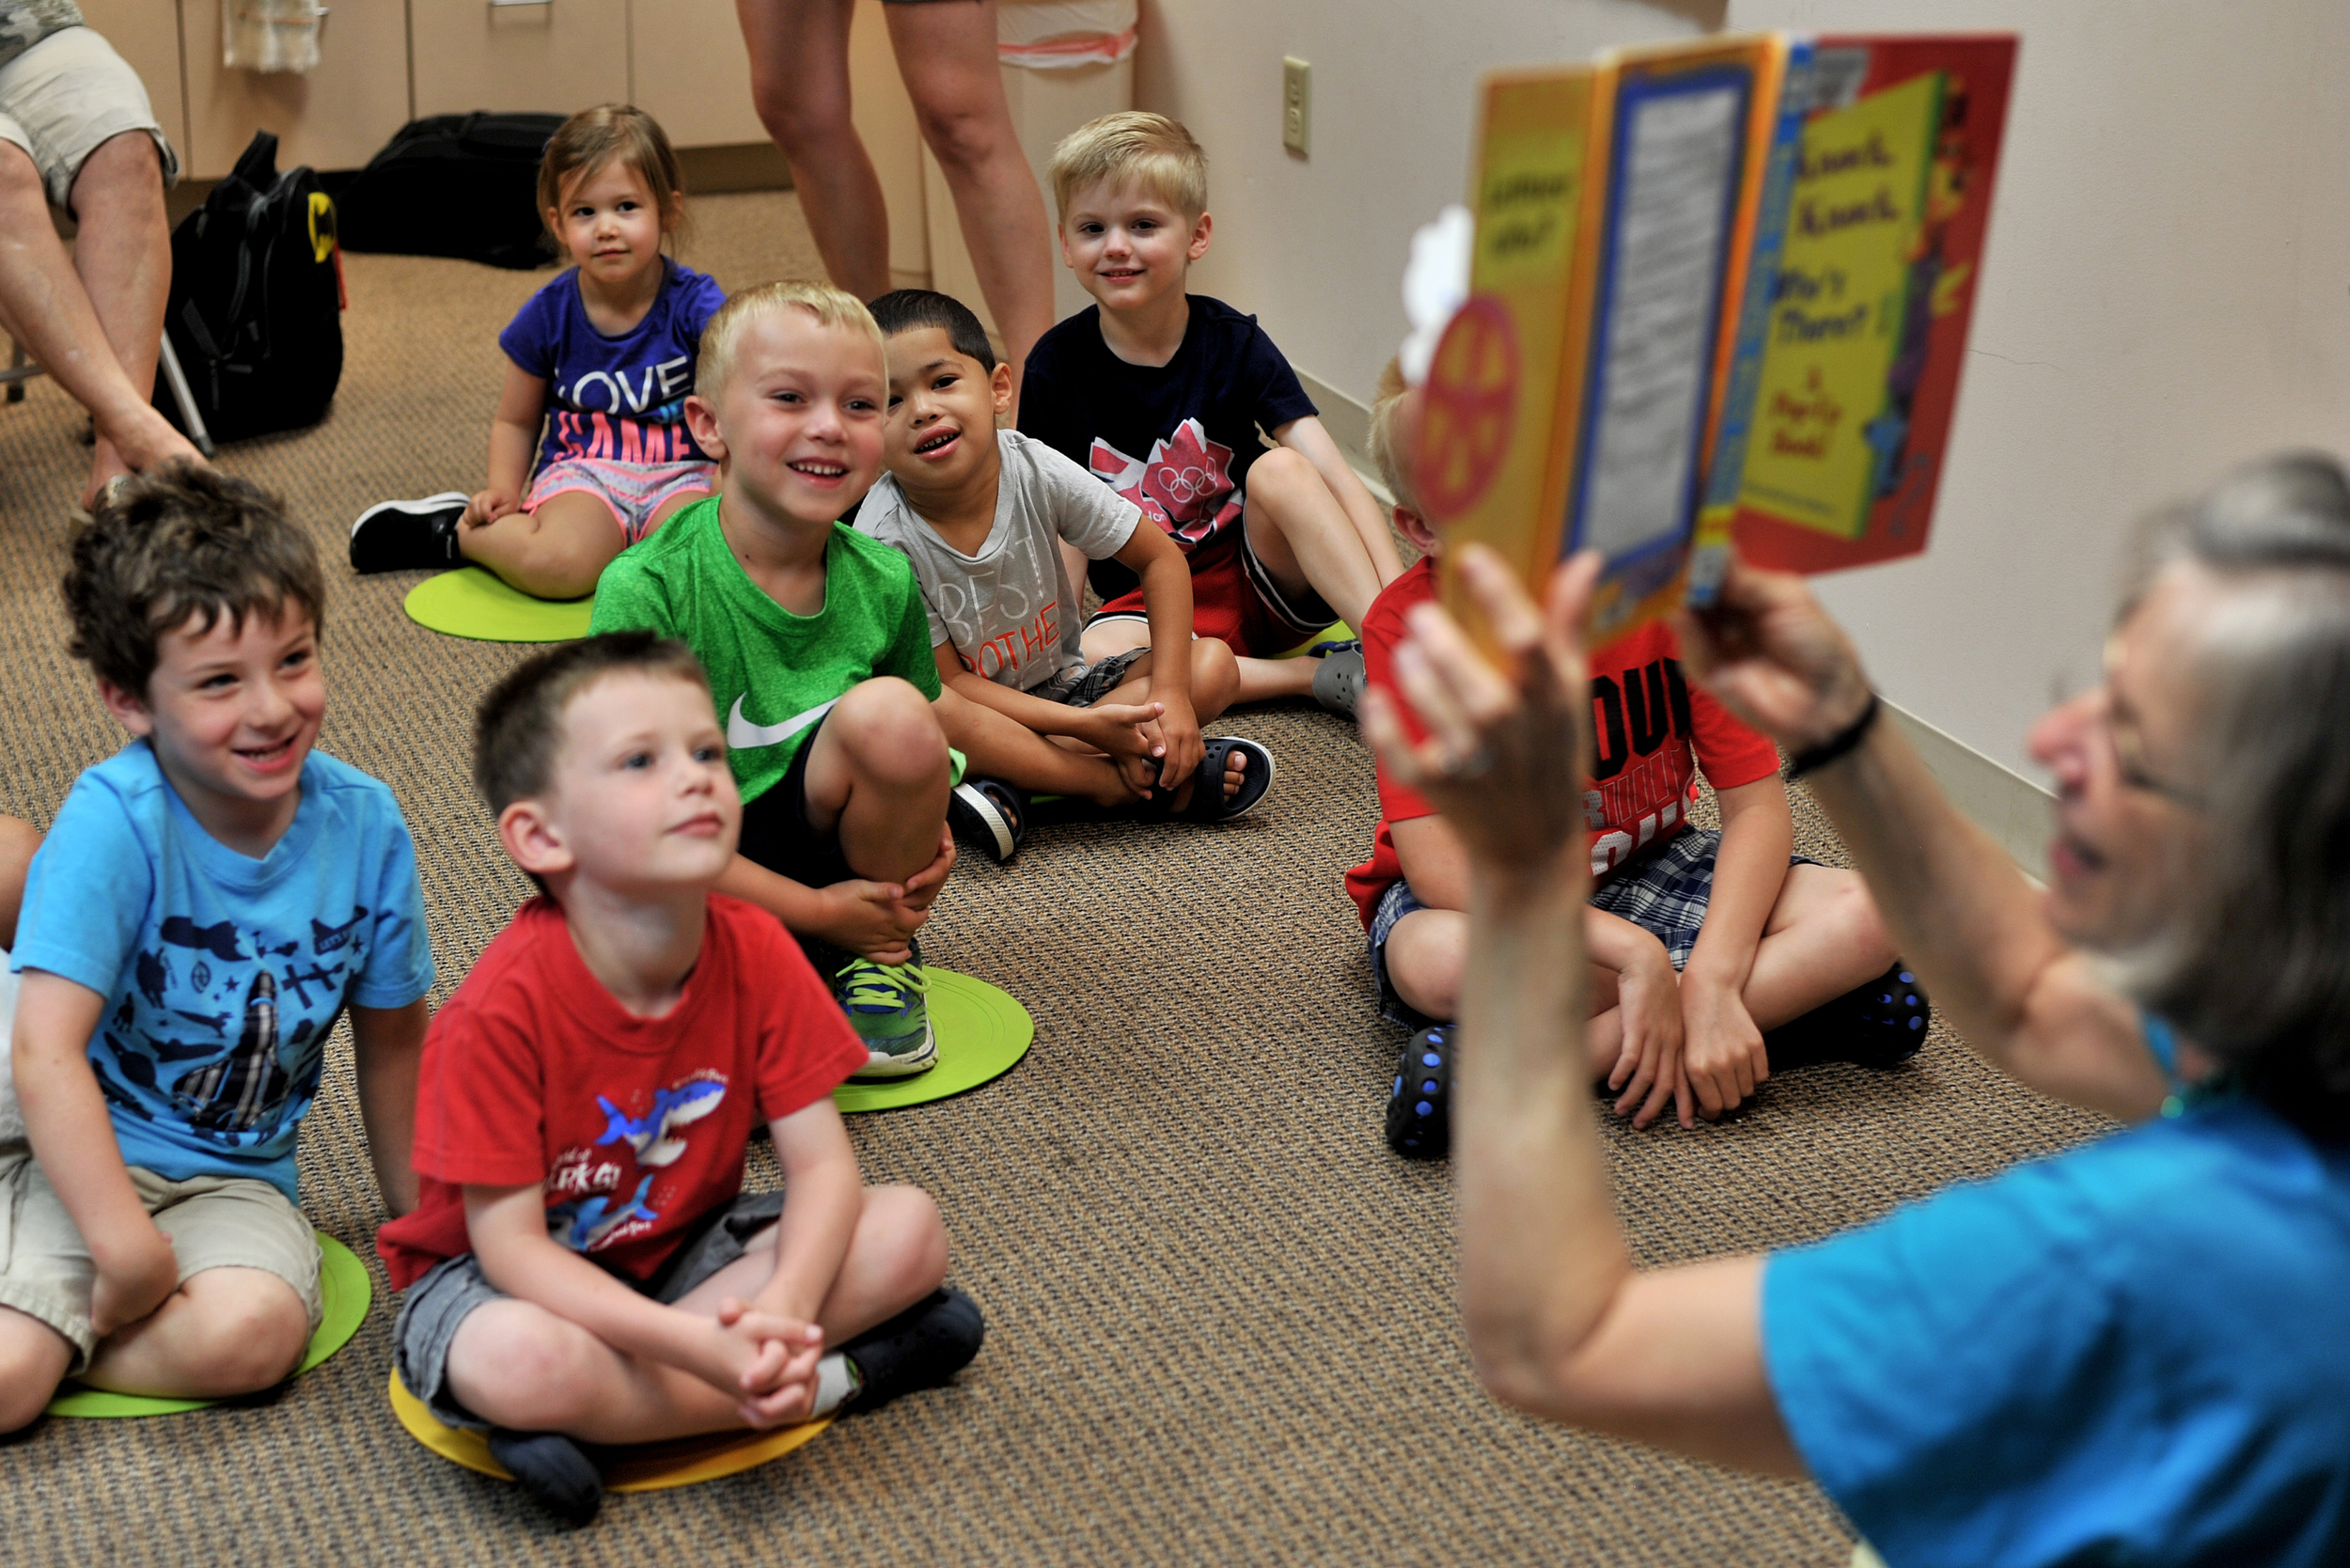 Patt McCloskey of Kutztown, PA, reads to kids during the StoryRiders Children's Program at West Lawn Wyomissing Hills Library in West Lawn, PA, on June 22, 2016. (Reading Eagle: Sarah Stier)